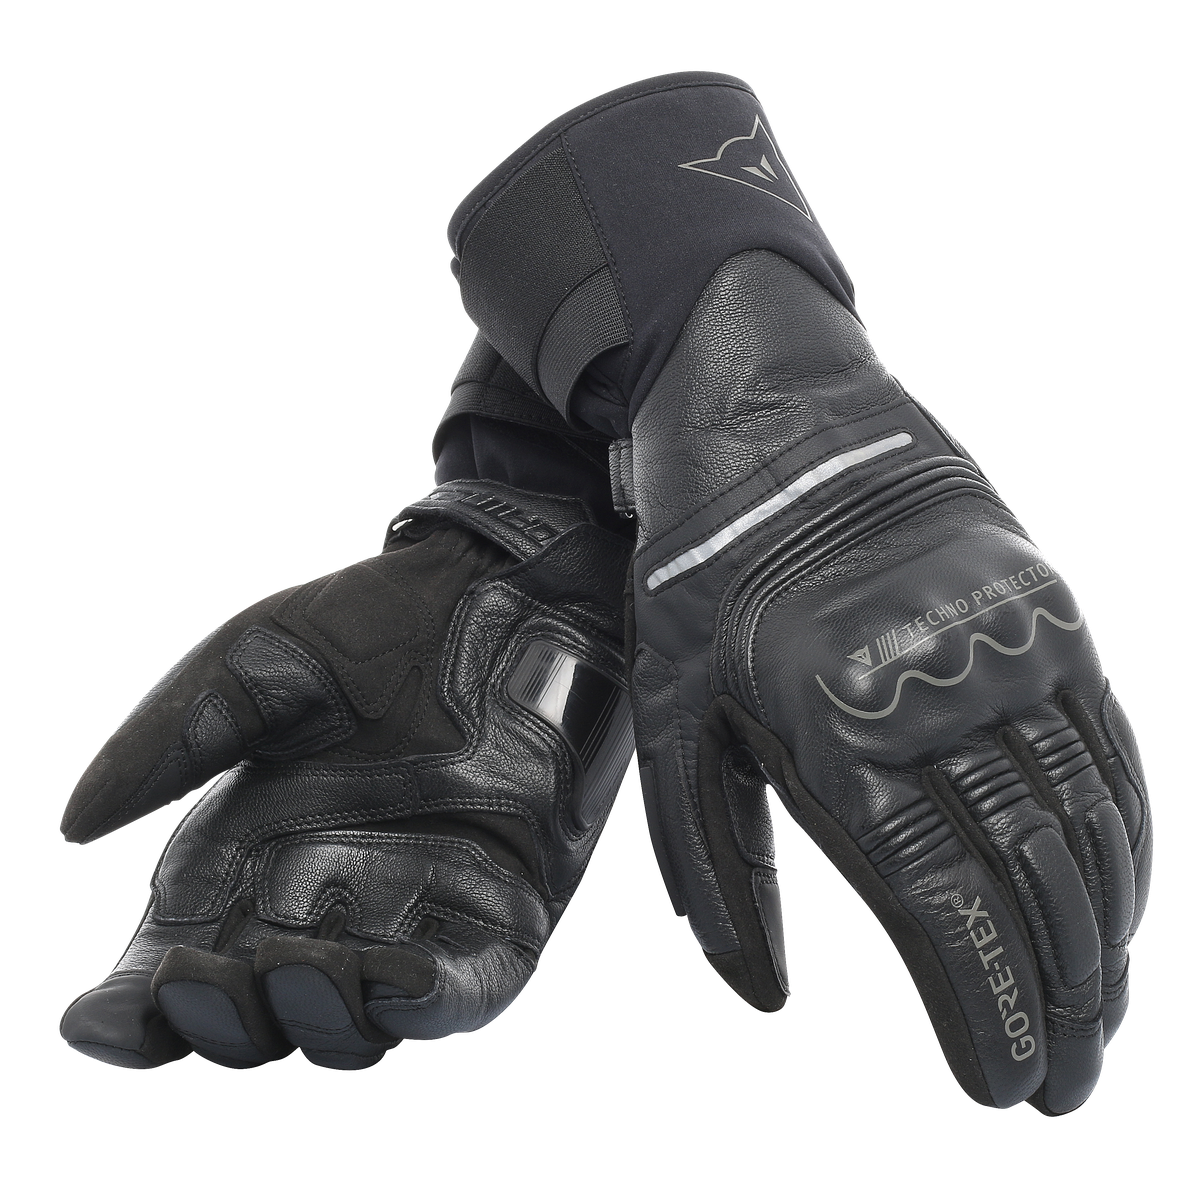 UNIVERSE GORE-TEX® GLOVES + GORE GRIP TECHNOLOGY Dainese BLACK/BLACK